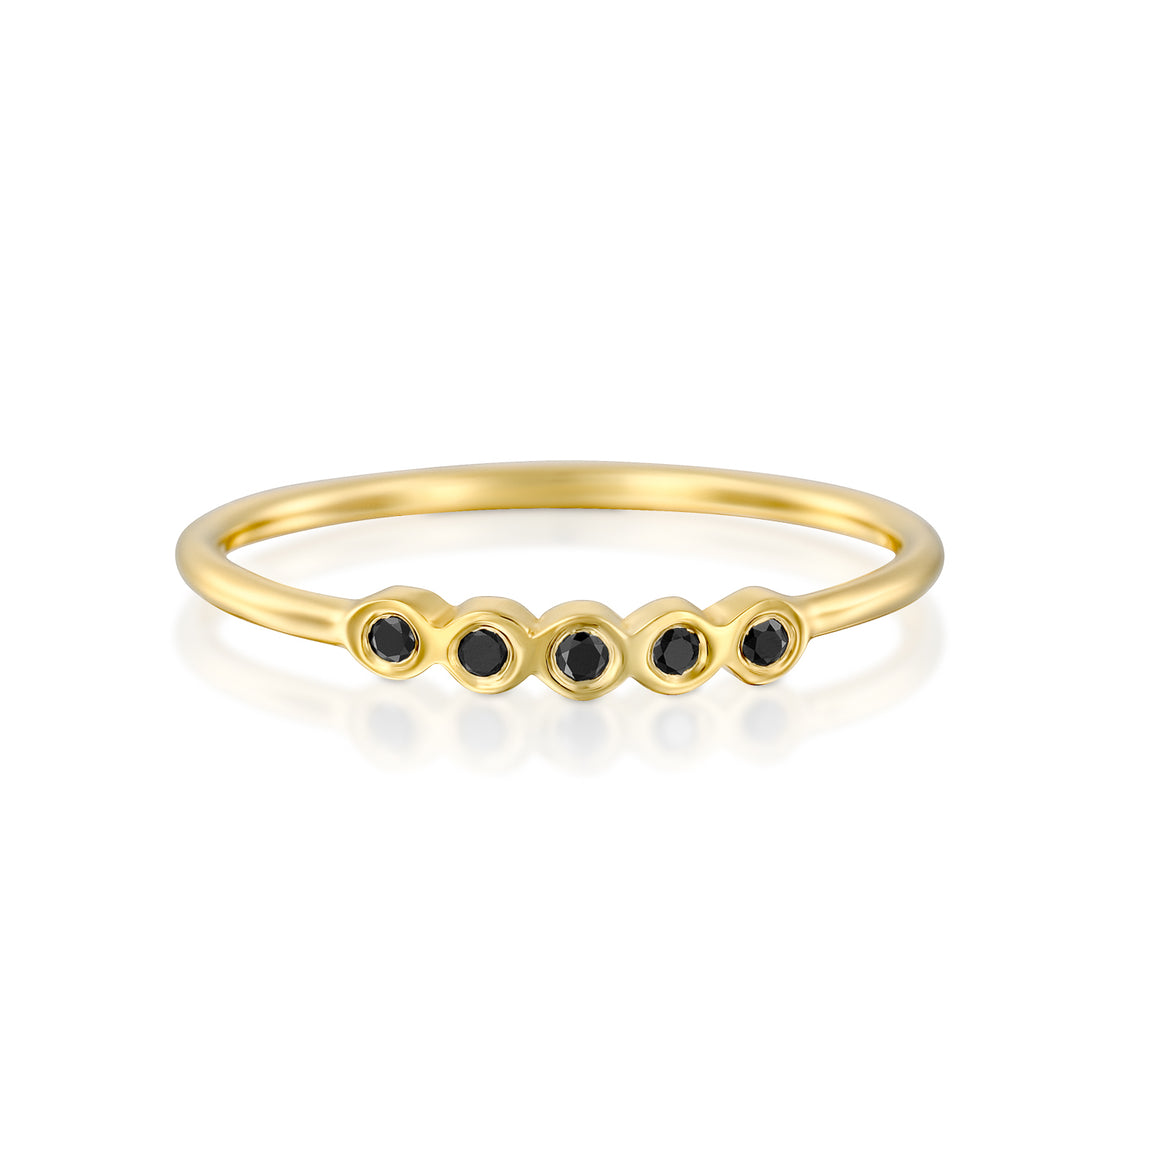 14ct Gold and Diamond Agata Ring. - Gemma Stone  ABN:51 621 127 866